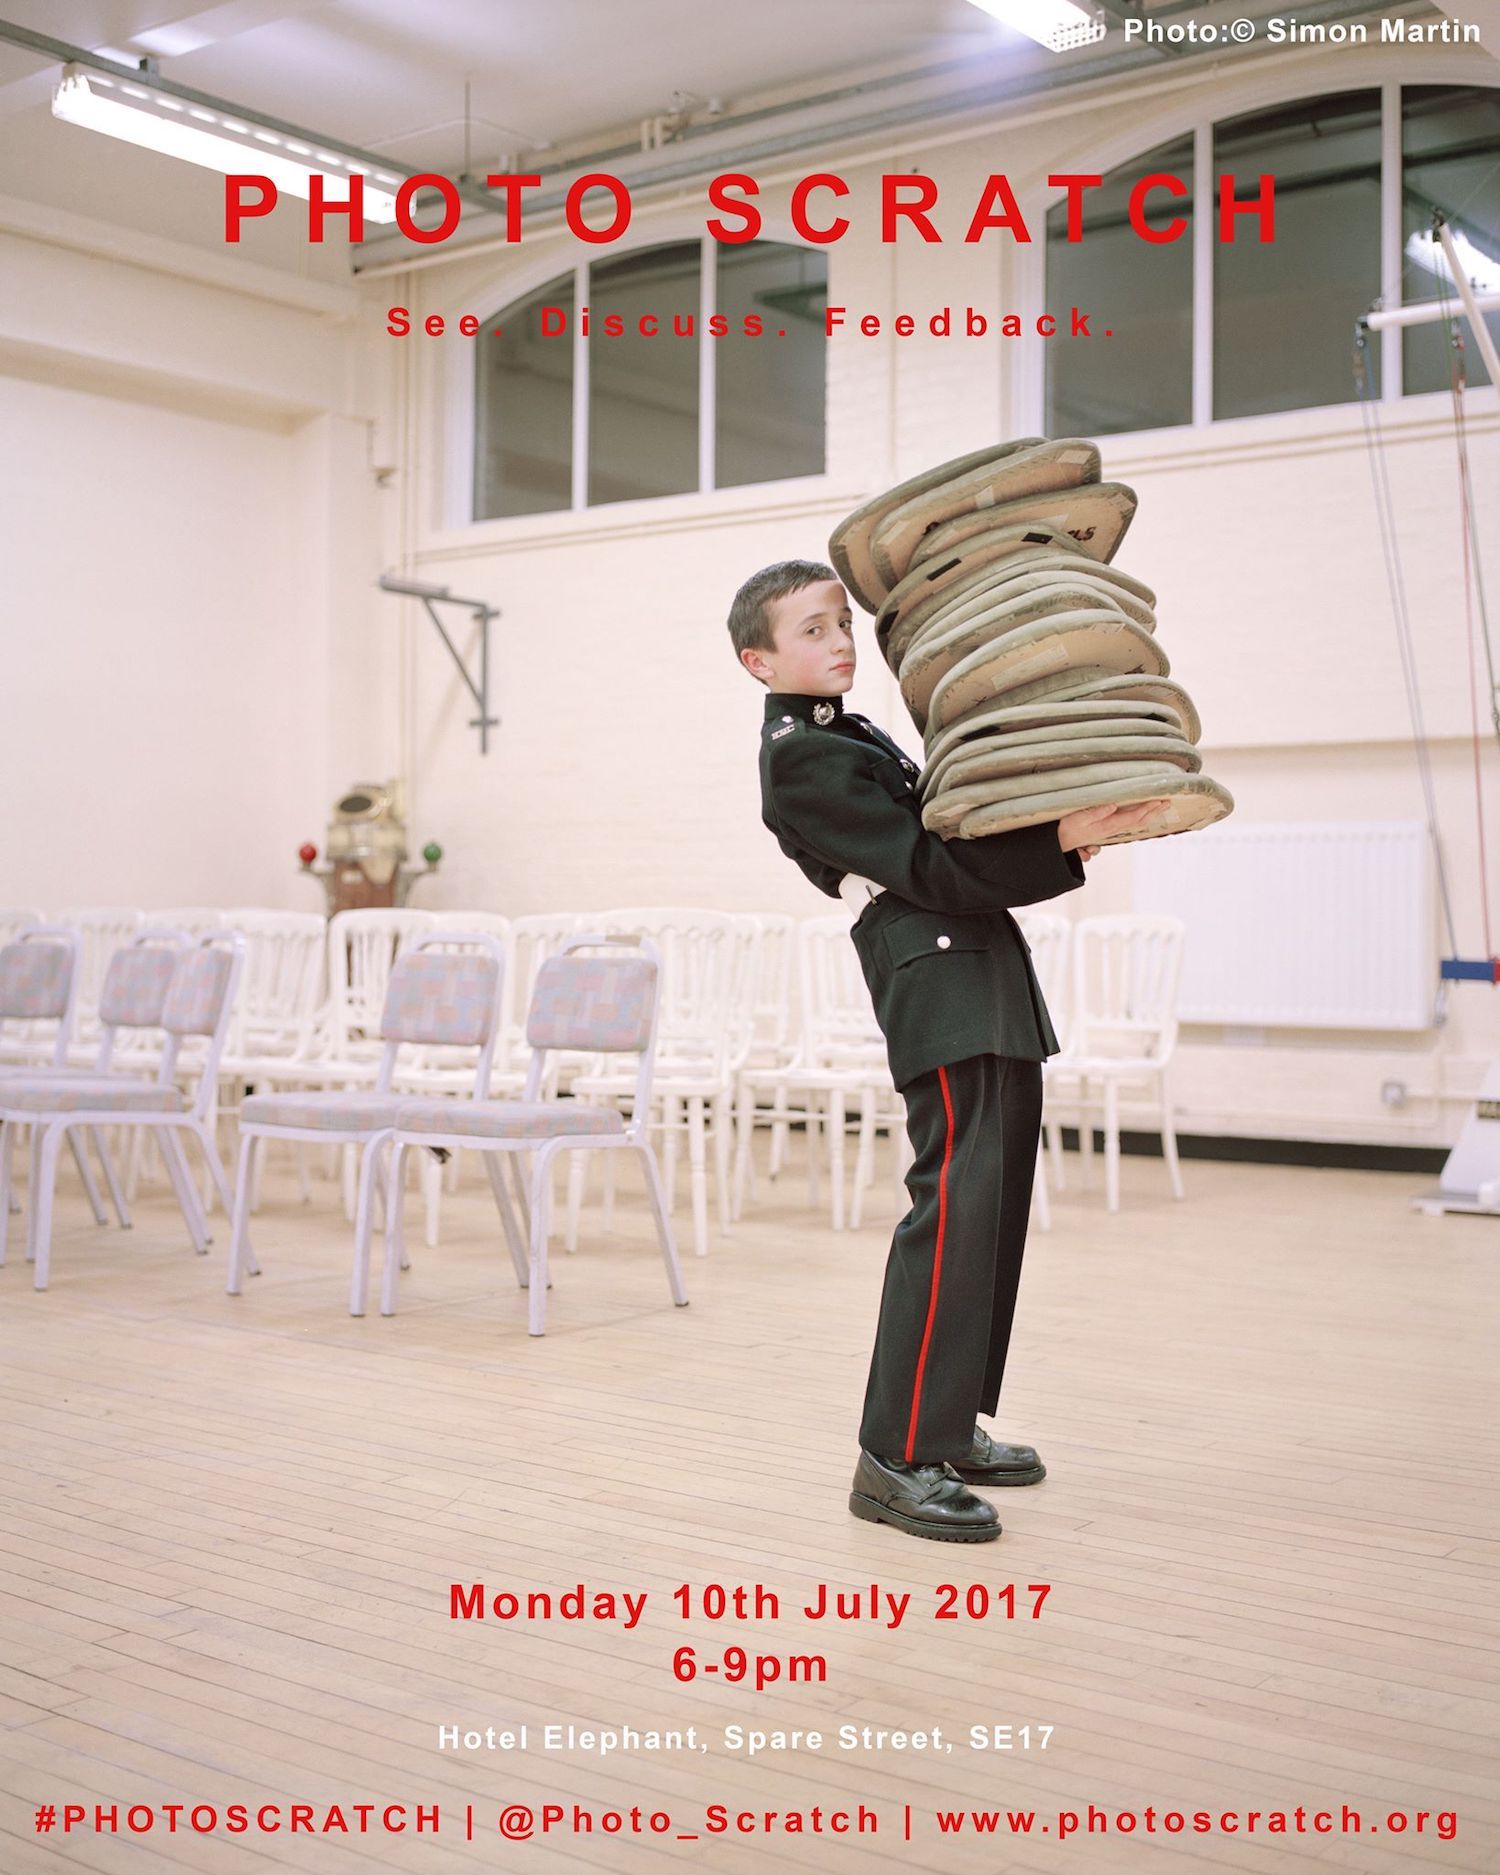 July 2017 Photo Scratch poster. Image © Simon Martin